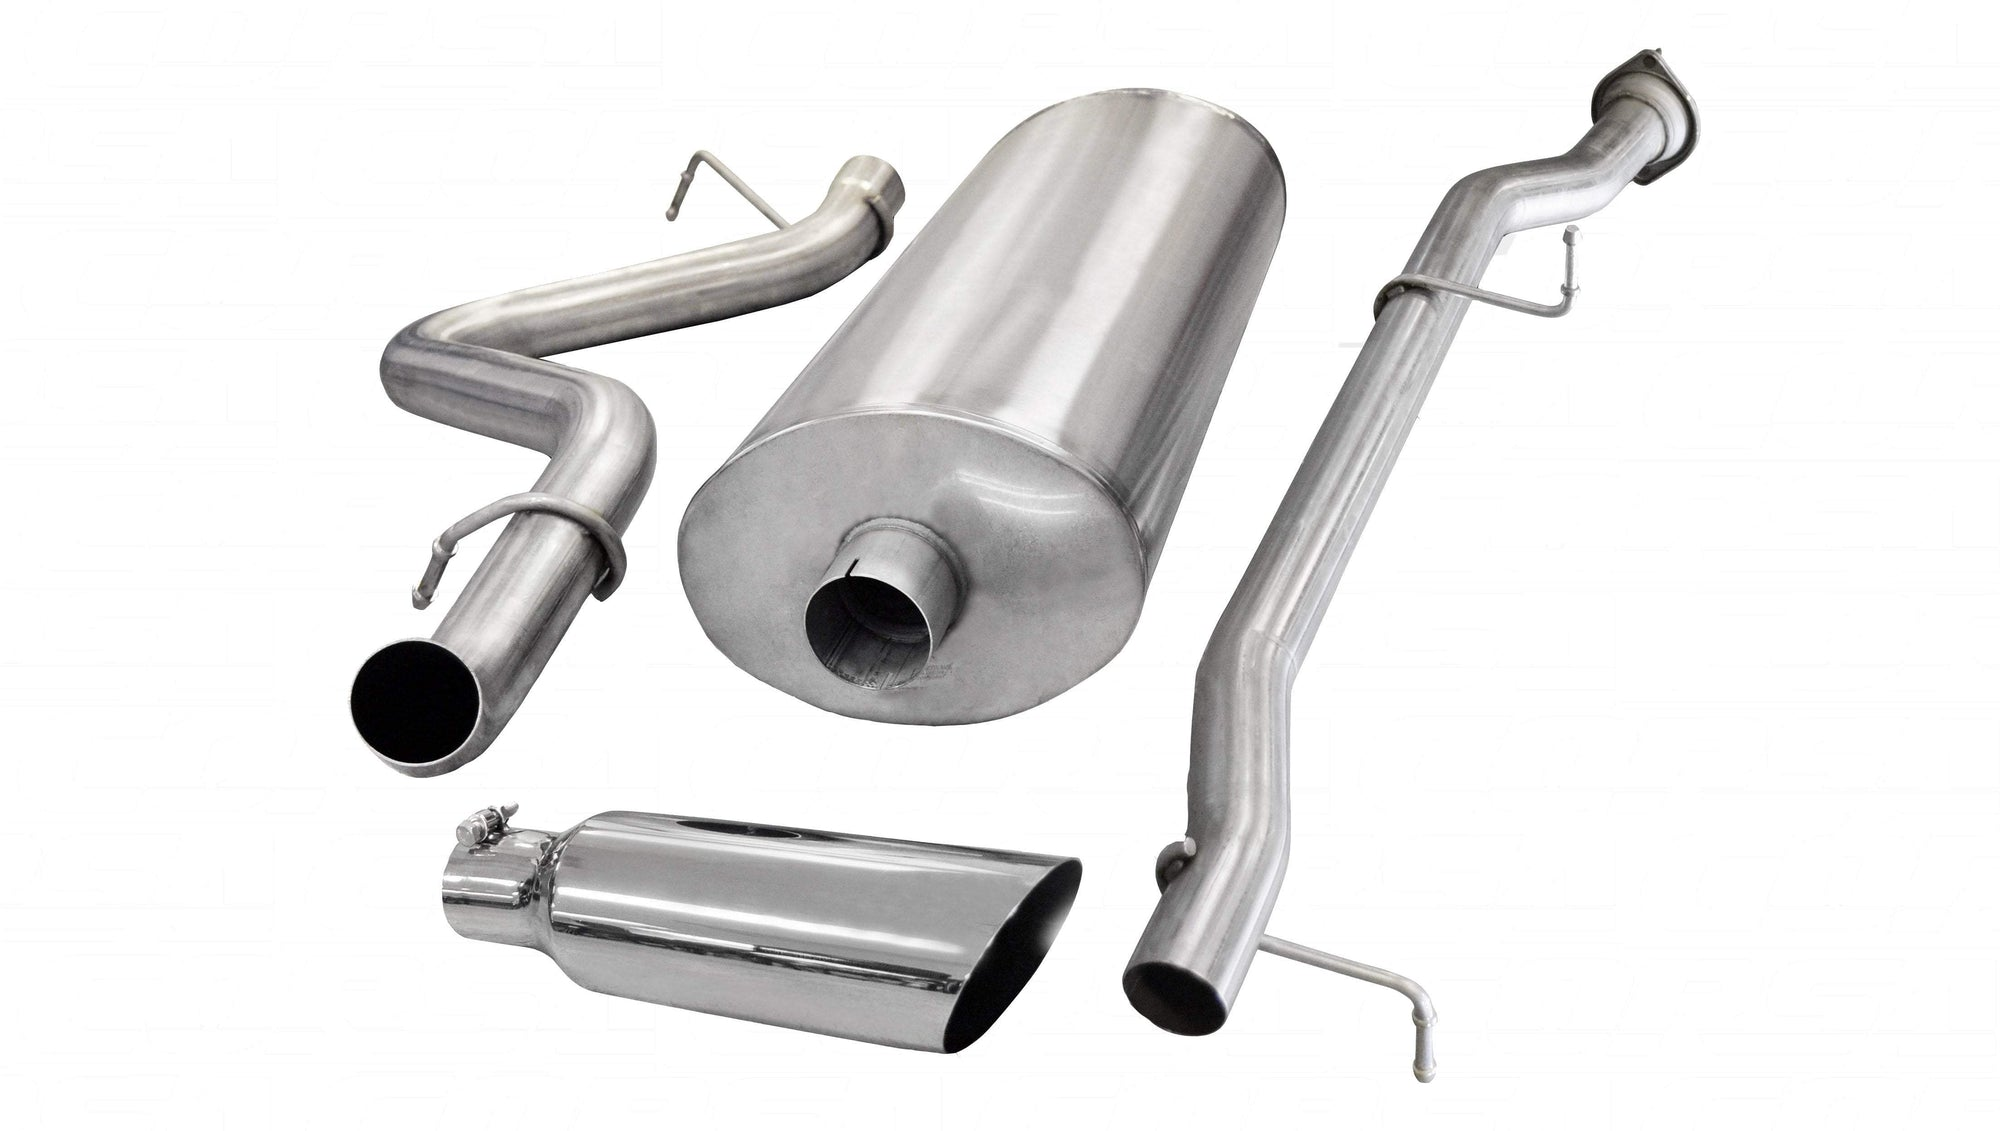 "dB Cat-Back Exhaust Polished / Sport / Single Side - Single 4in 2007-2010 Chevrolet Silverado, GMC Sierra 6.0L V8, 3.0"" Catback Exhaust System with 4.0"" Tip (24890) Sport Sound Level"